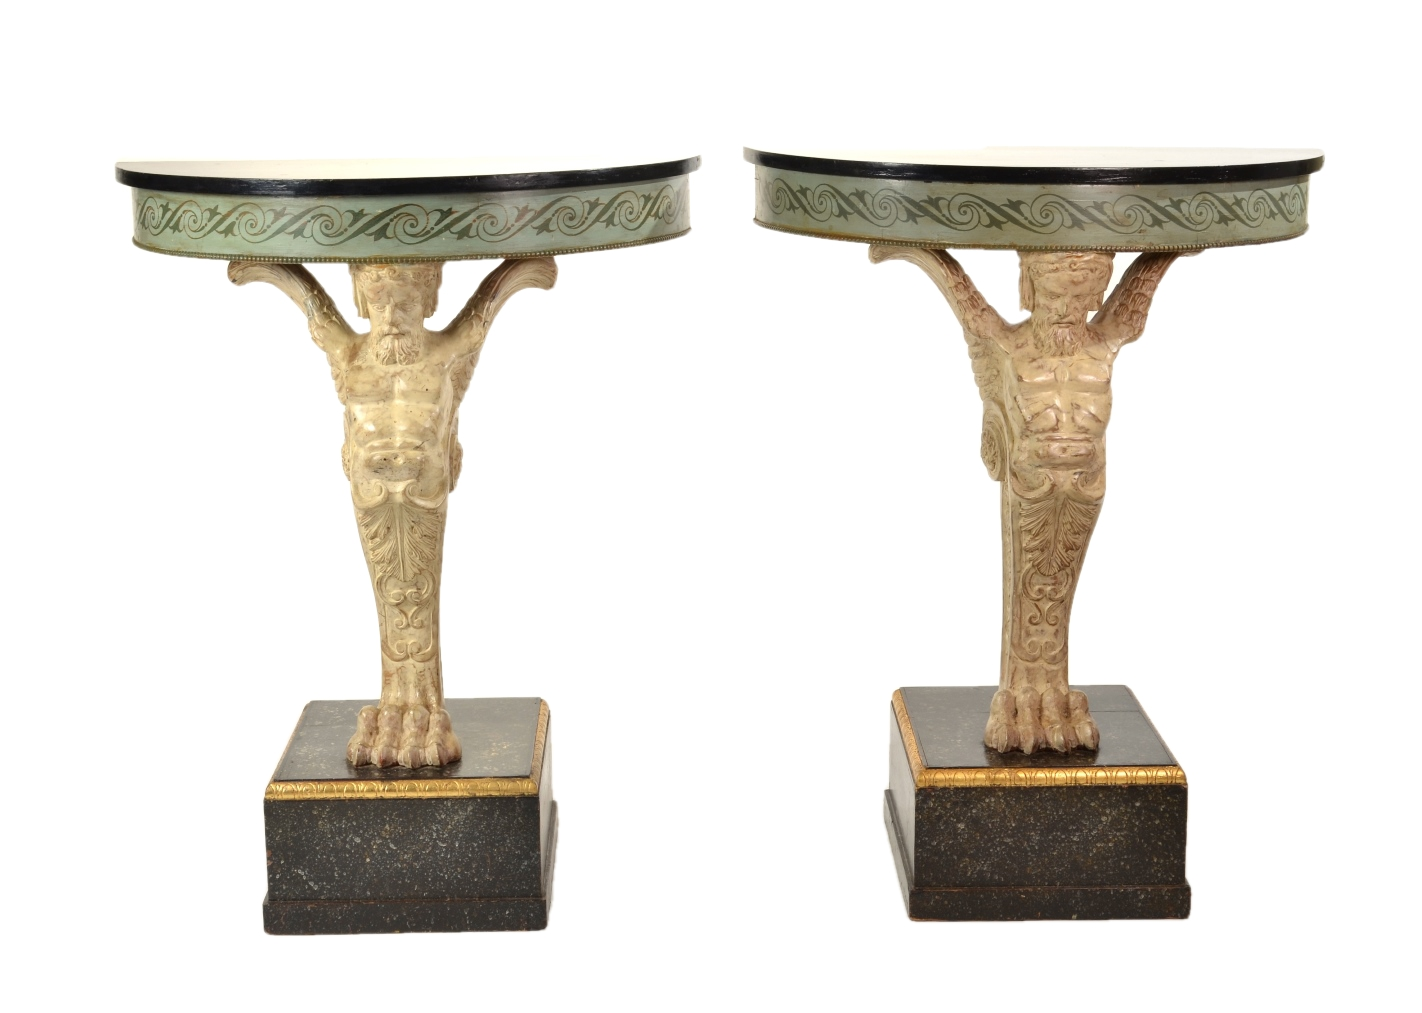 View 1: Pair of Carved and Painted Demilune Console Tables, 20th c.